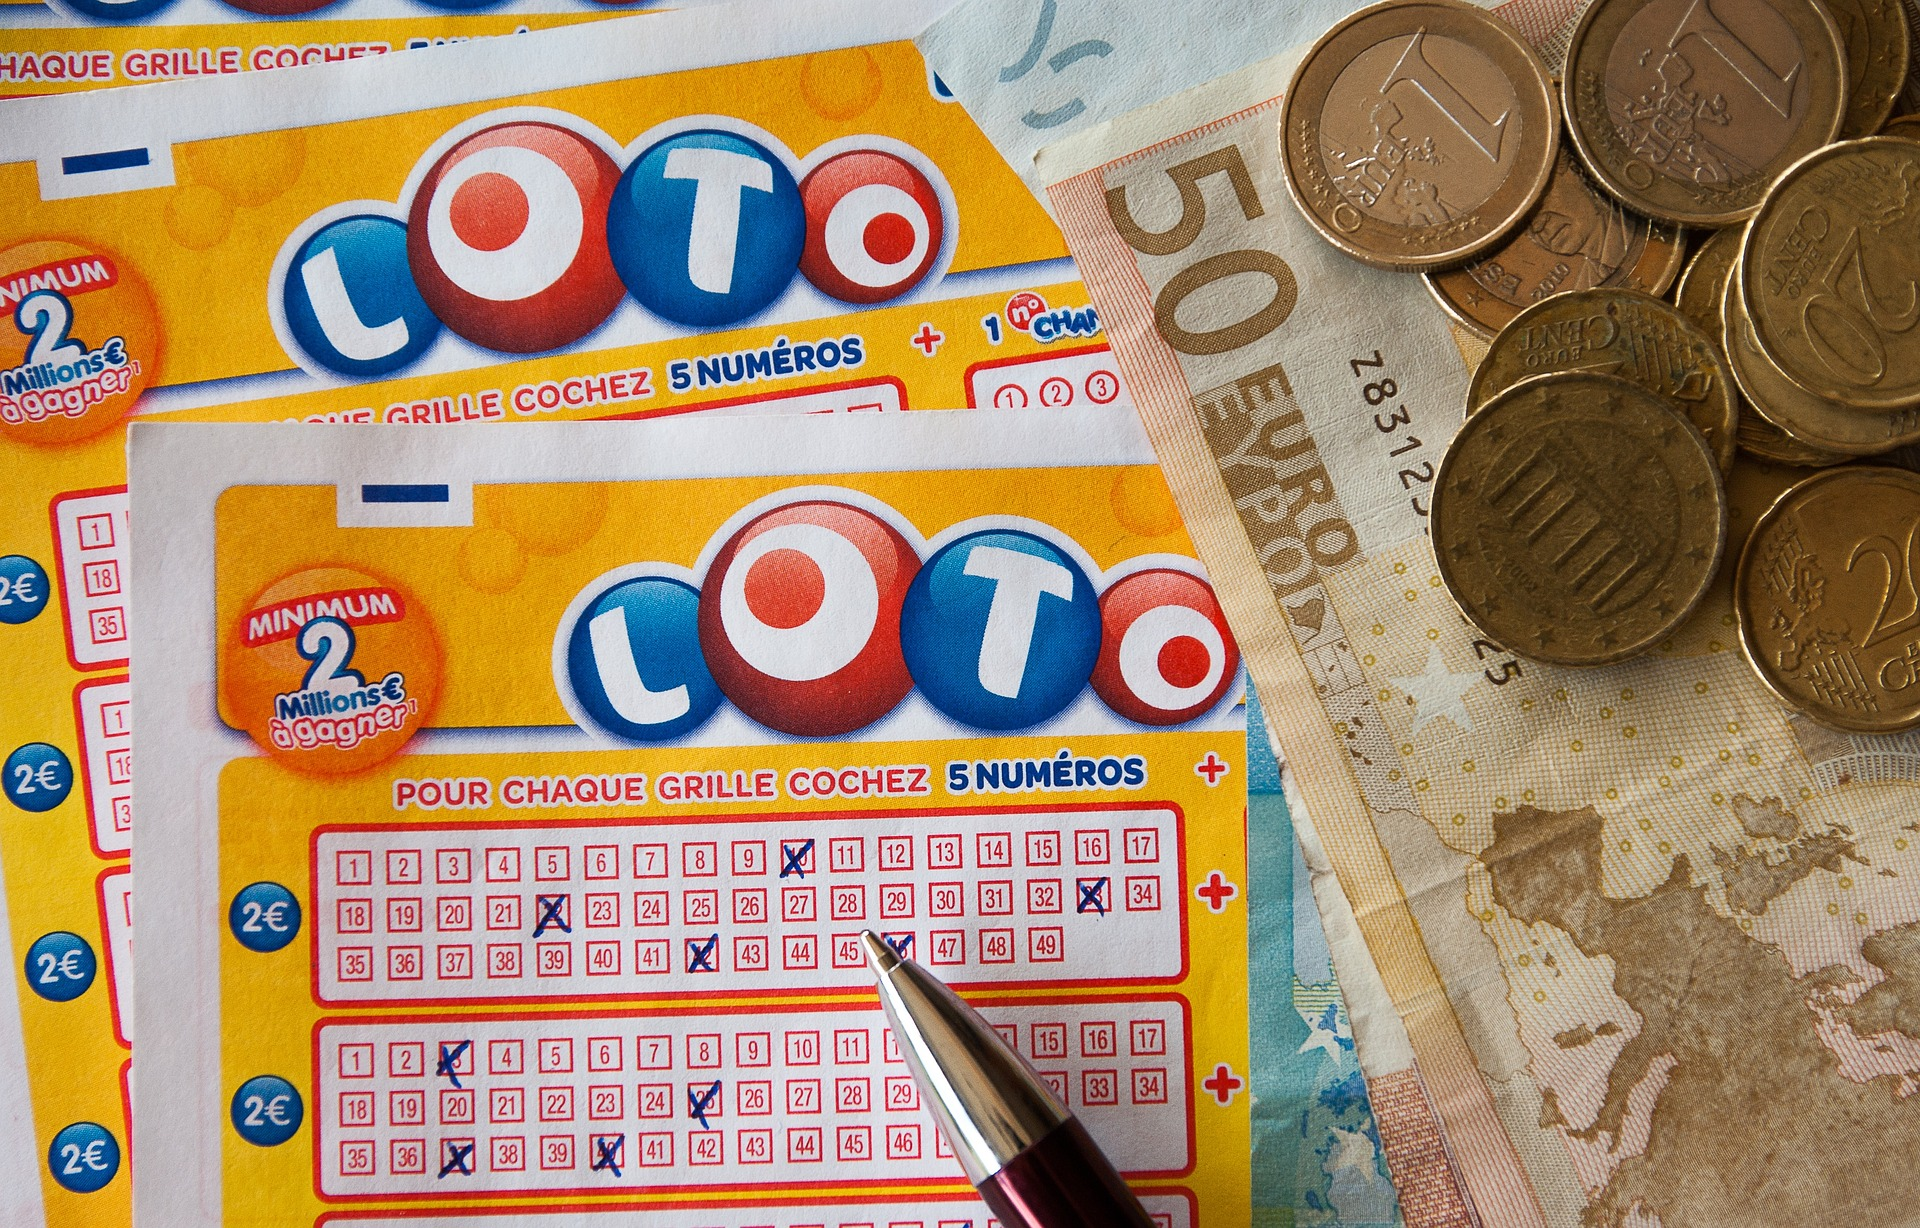 lottery tickets, pan and money on a table